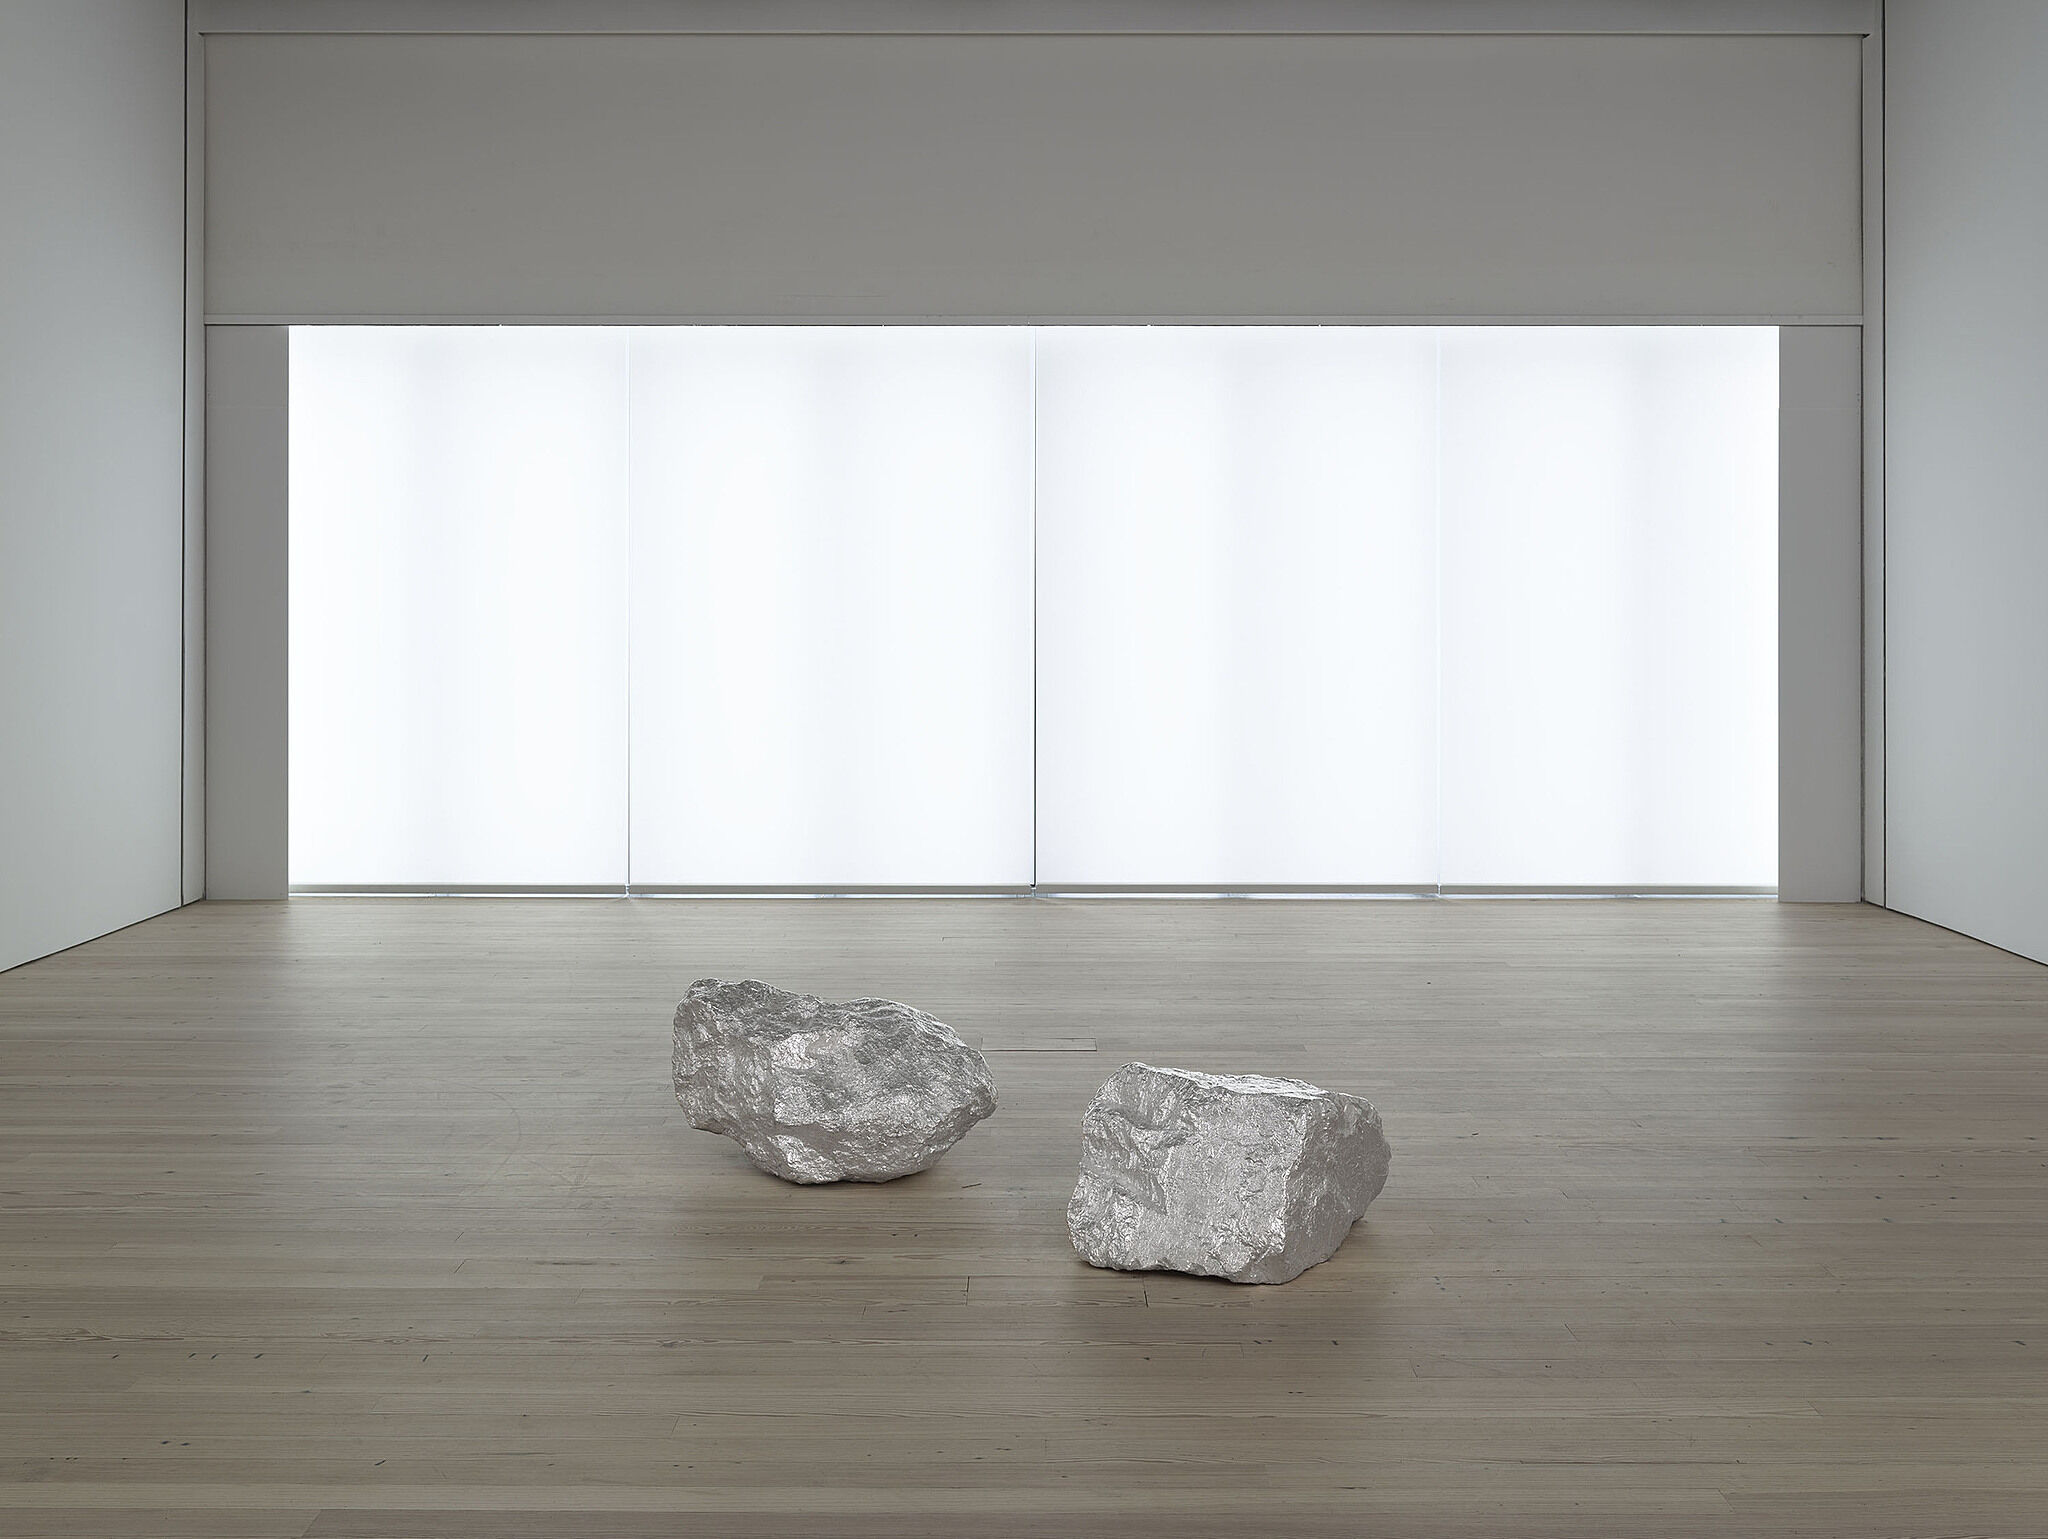 Two rocks  in the middle of a room with a bright light behind.